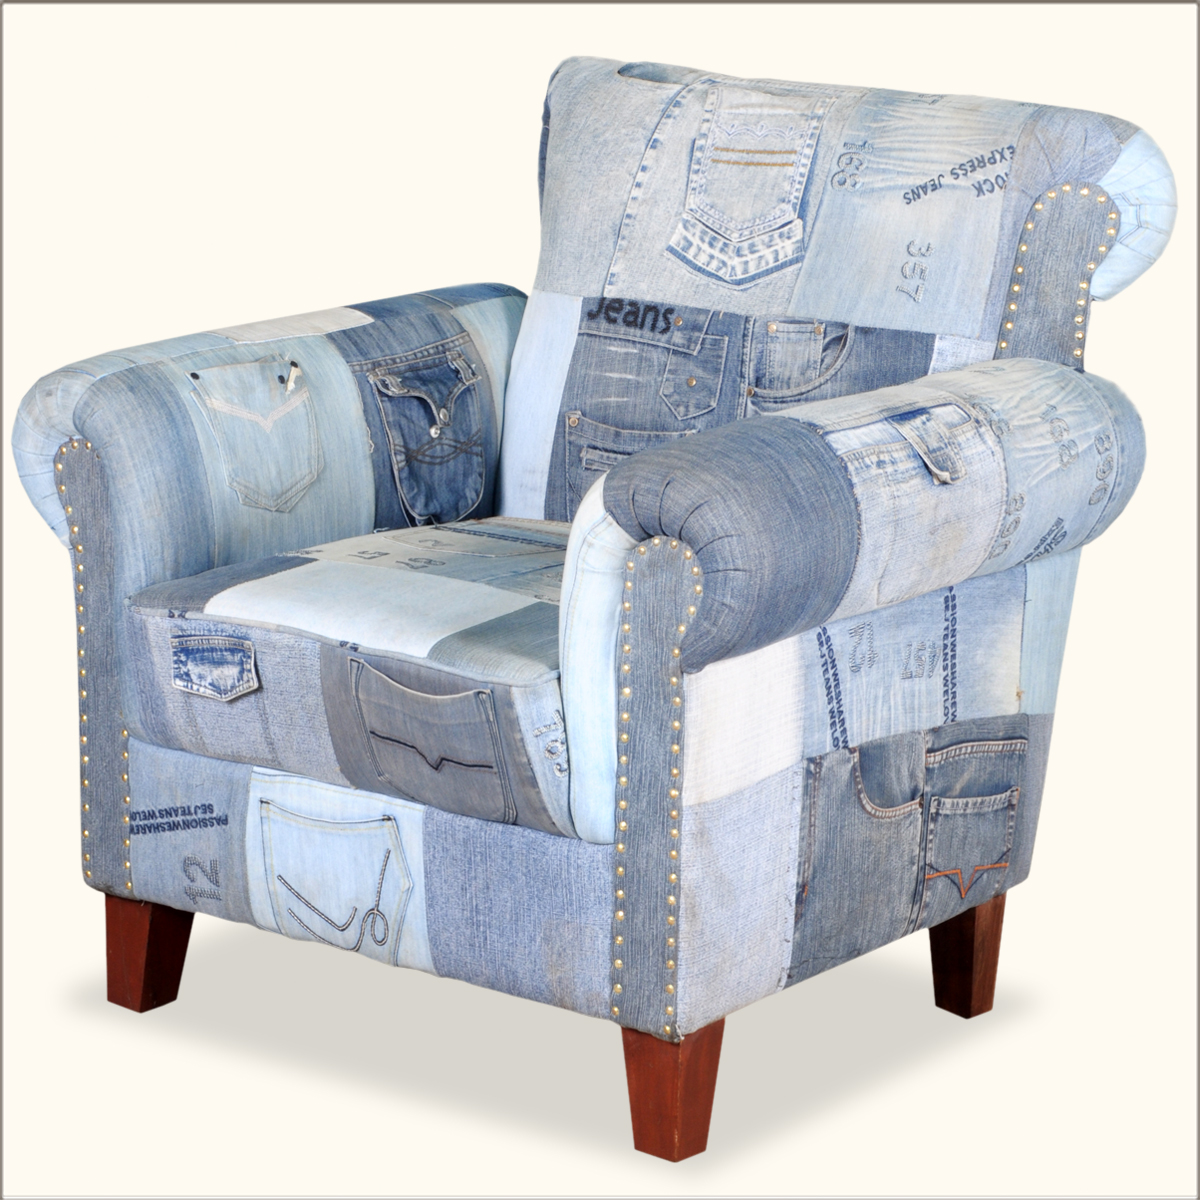 Overstuffed Chair Whimsical Blue Jean W Pockets Overstuffed Easy Chair Ebay